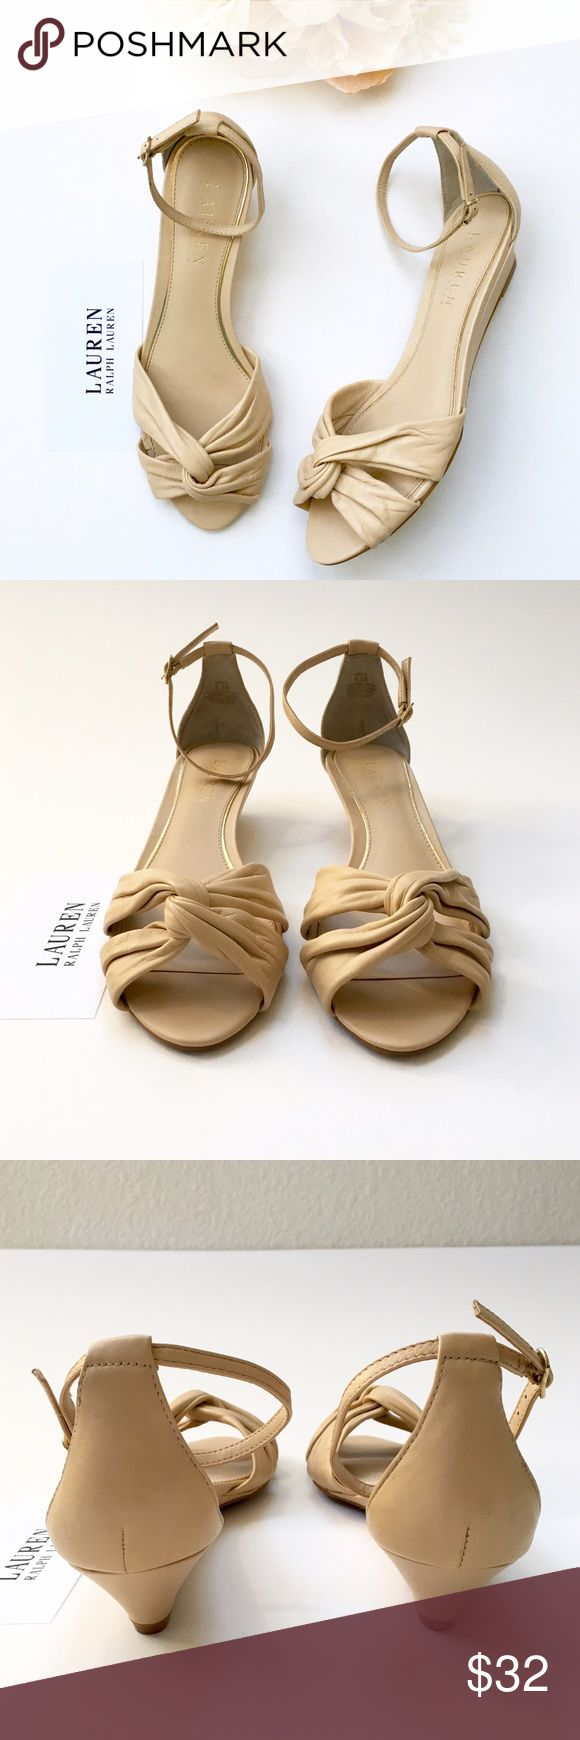 Lauren RL Mireya Leather Low Wedge Neutral Sandal Lauren Ralph Lauren. Size 6.5B. Leather. Color: warm cream...neutral, straw. Narrow ankle strap. Twist at toe. Heel: 1.5 inches, no platform. This shoe is used and in very good condition, worn once. Neutral. Natural. 100% leather. Comfortable. Feminine.❤️ Lauren Ralph Lauren Shoes Sandals